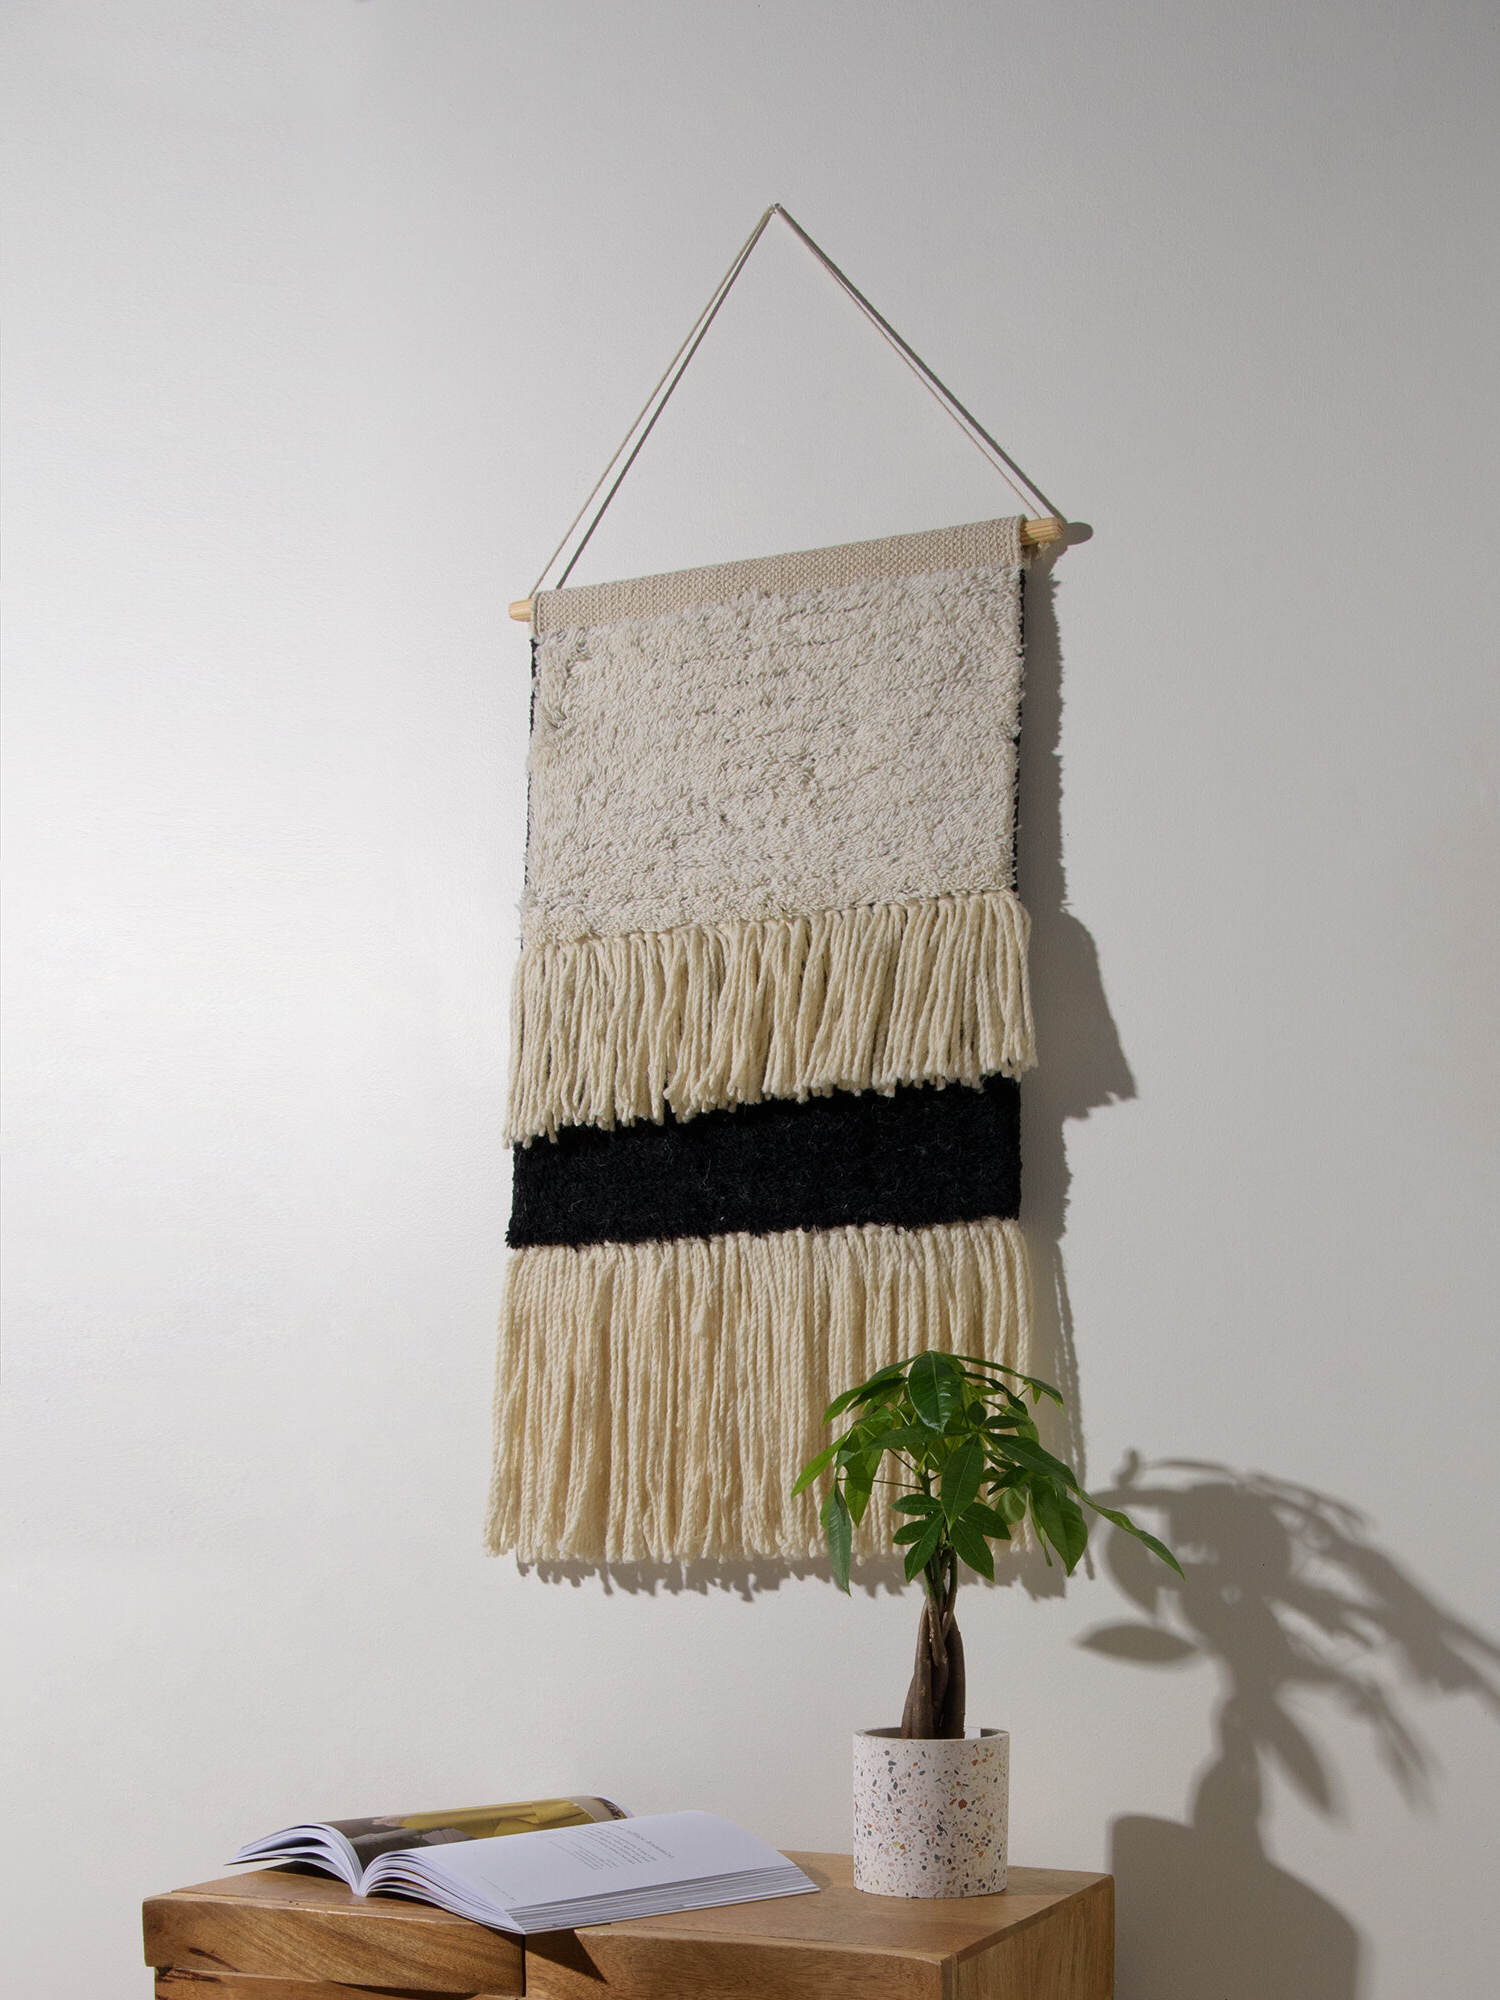 Latest Blended Fabric Wall Hangings With Hanging Accessories Included Throughout Blended Fabric Wall Hanging With Hanging Accessories Included (View 3 of 20)